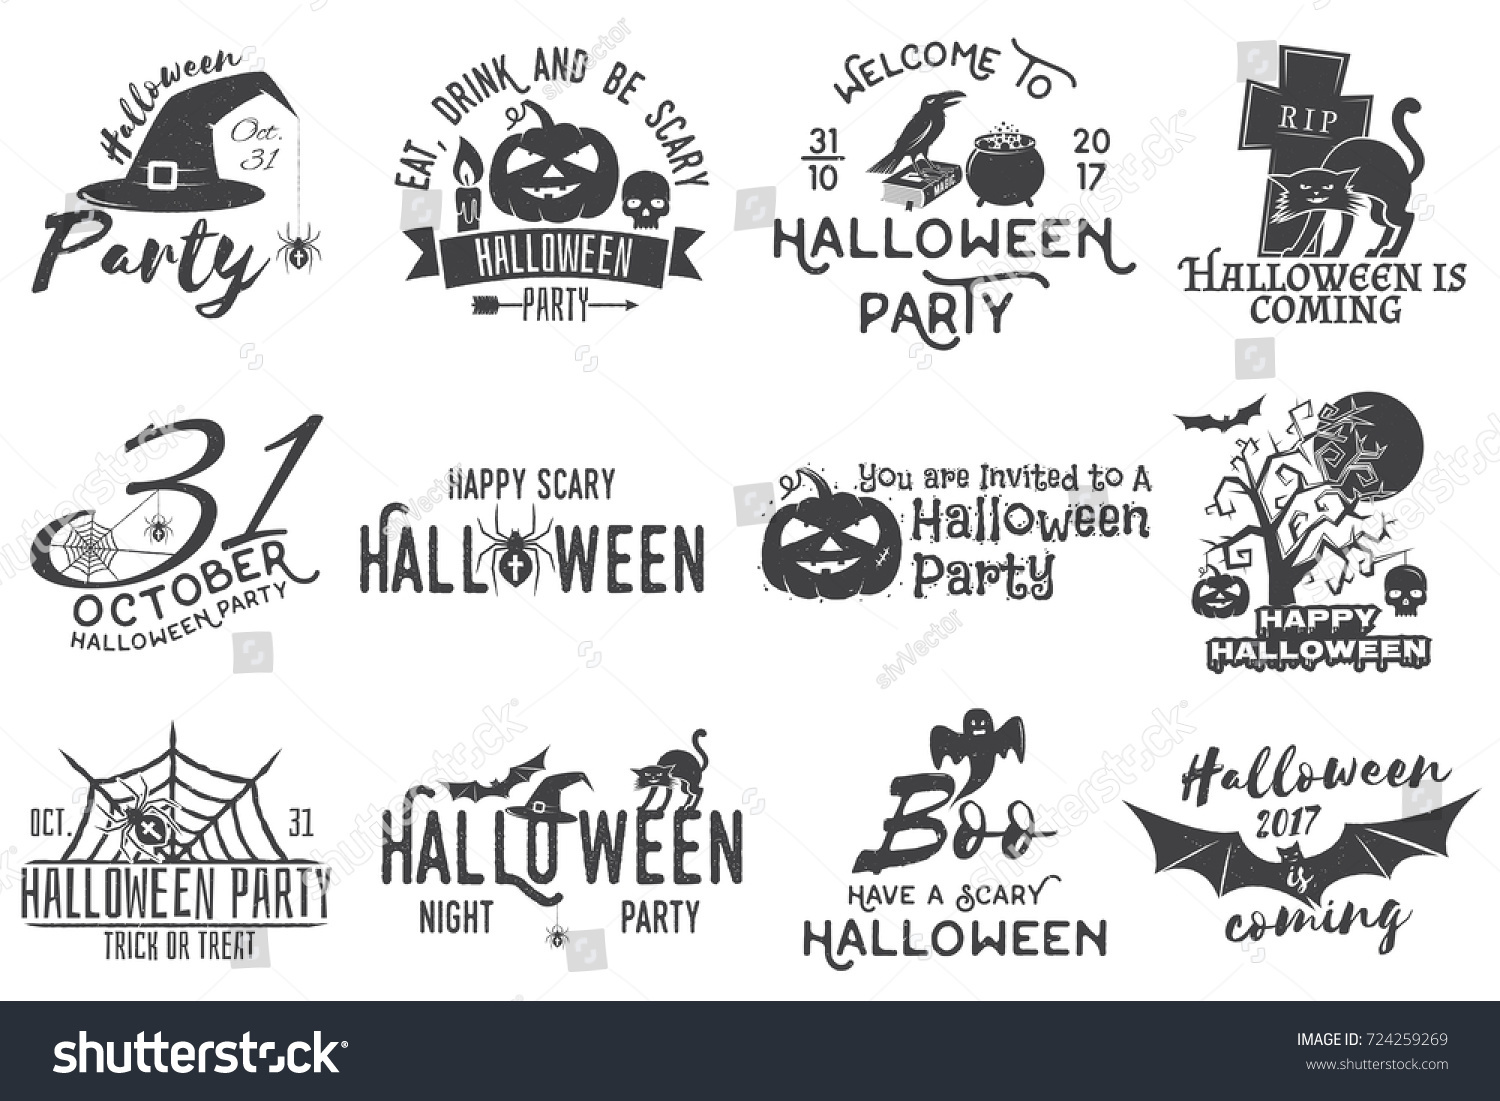 Set Halloween Party Concept Halloween Party Stock Illustration ...